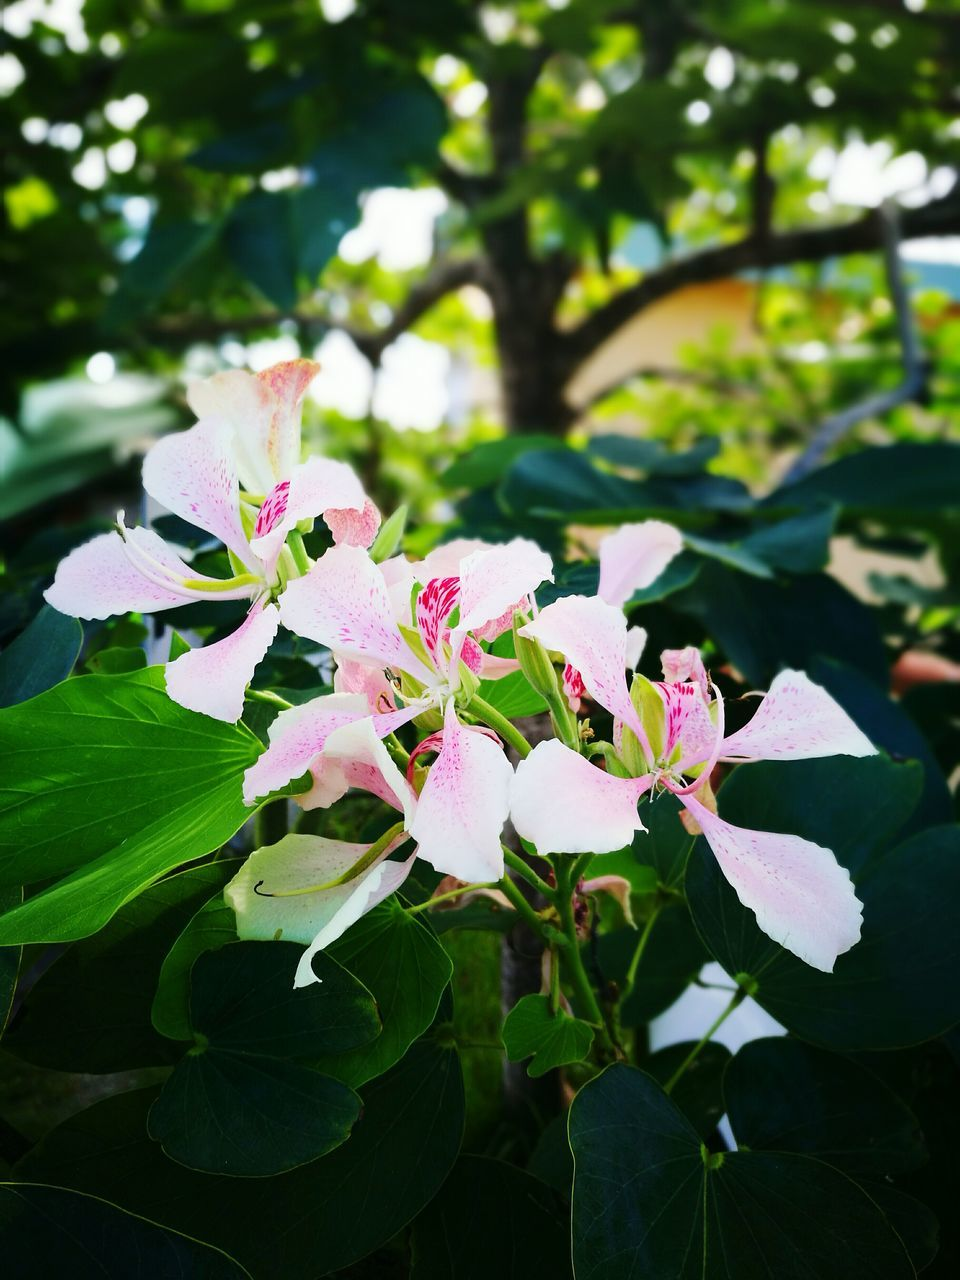 flower, nature, beauty in nature, growth, fragility, petal, leaf, freshness, pink color, day, outdoors, no people, green color, flower head, plant, focus on foreground, close-up, tree, blooming, periwinkle